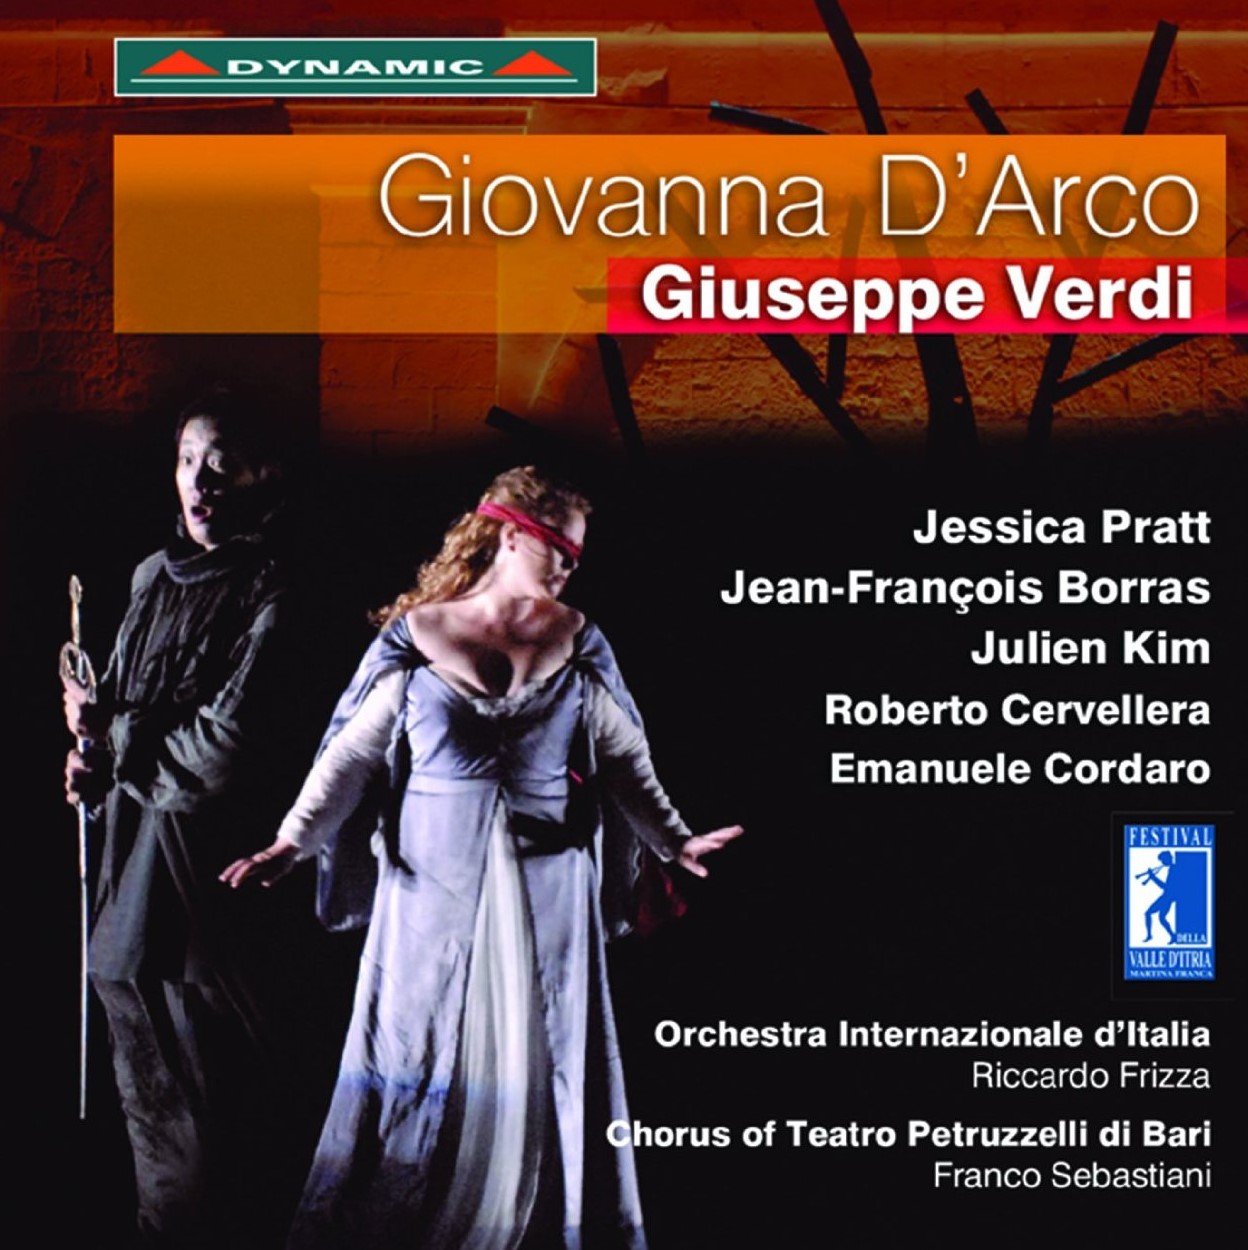 SINGER SPOTLIGHT: Soprano JESSICA PRATT, star of Festivale della Valle d'Itria's 2013 production of Giuseppe Verdi's GIOVANNA D'ARCO, released on CD and DVD by Dynamic [Cover art © by Dynamic]